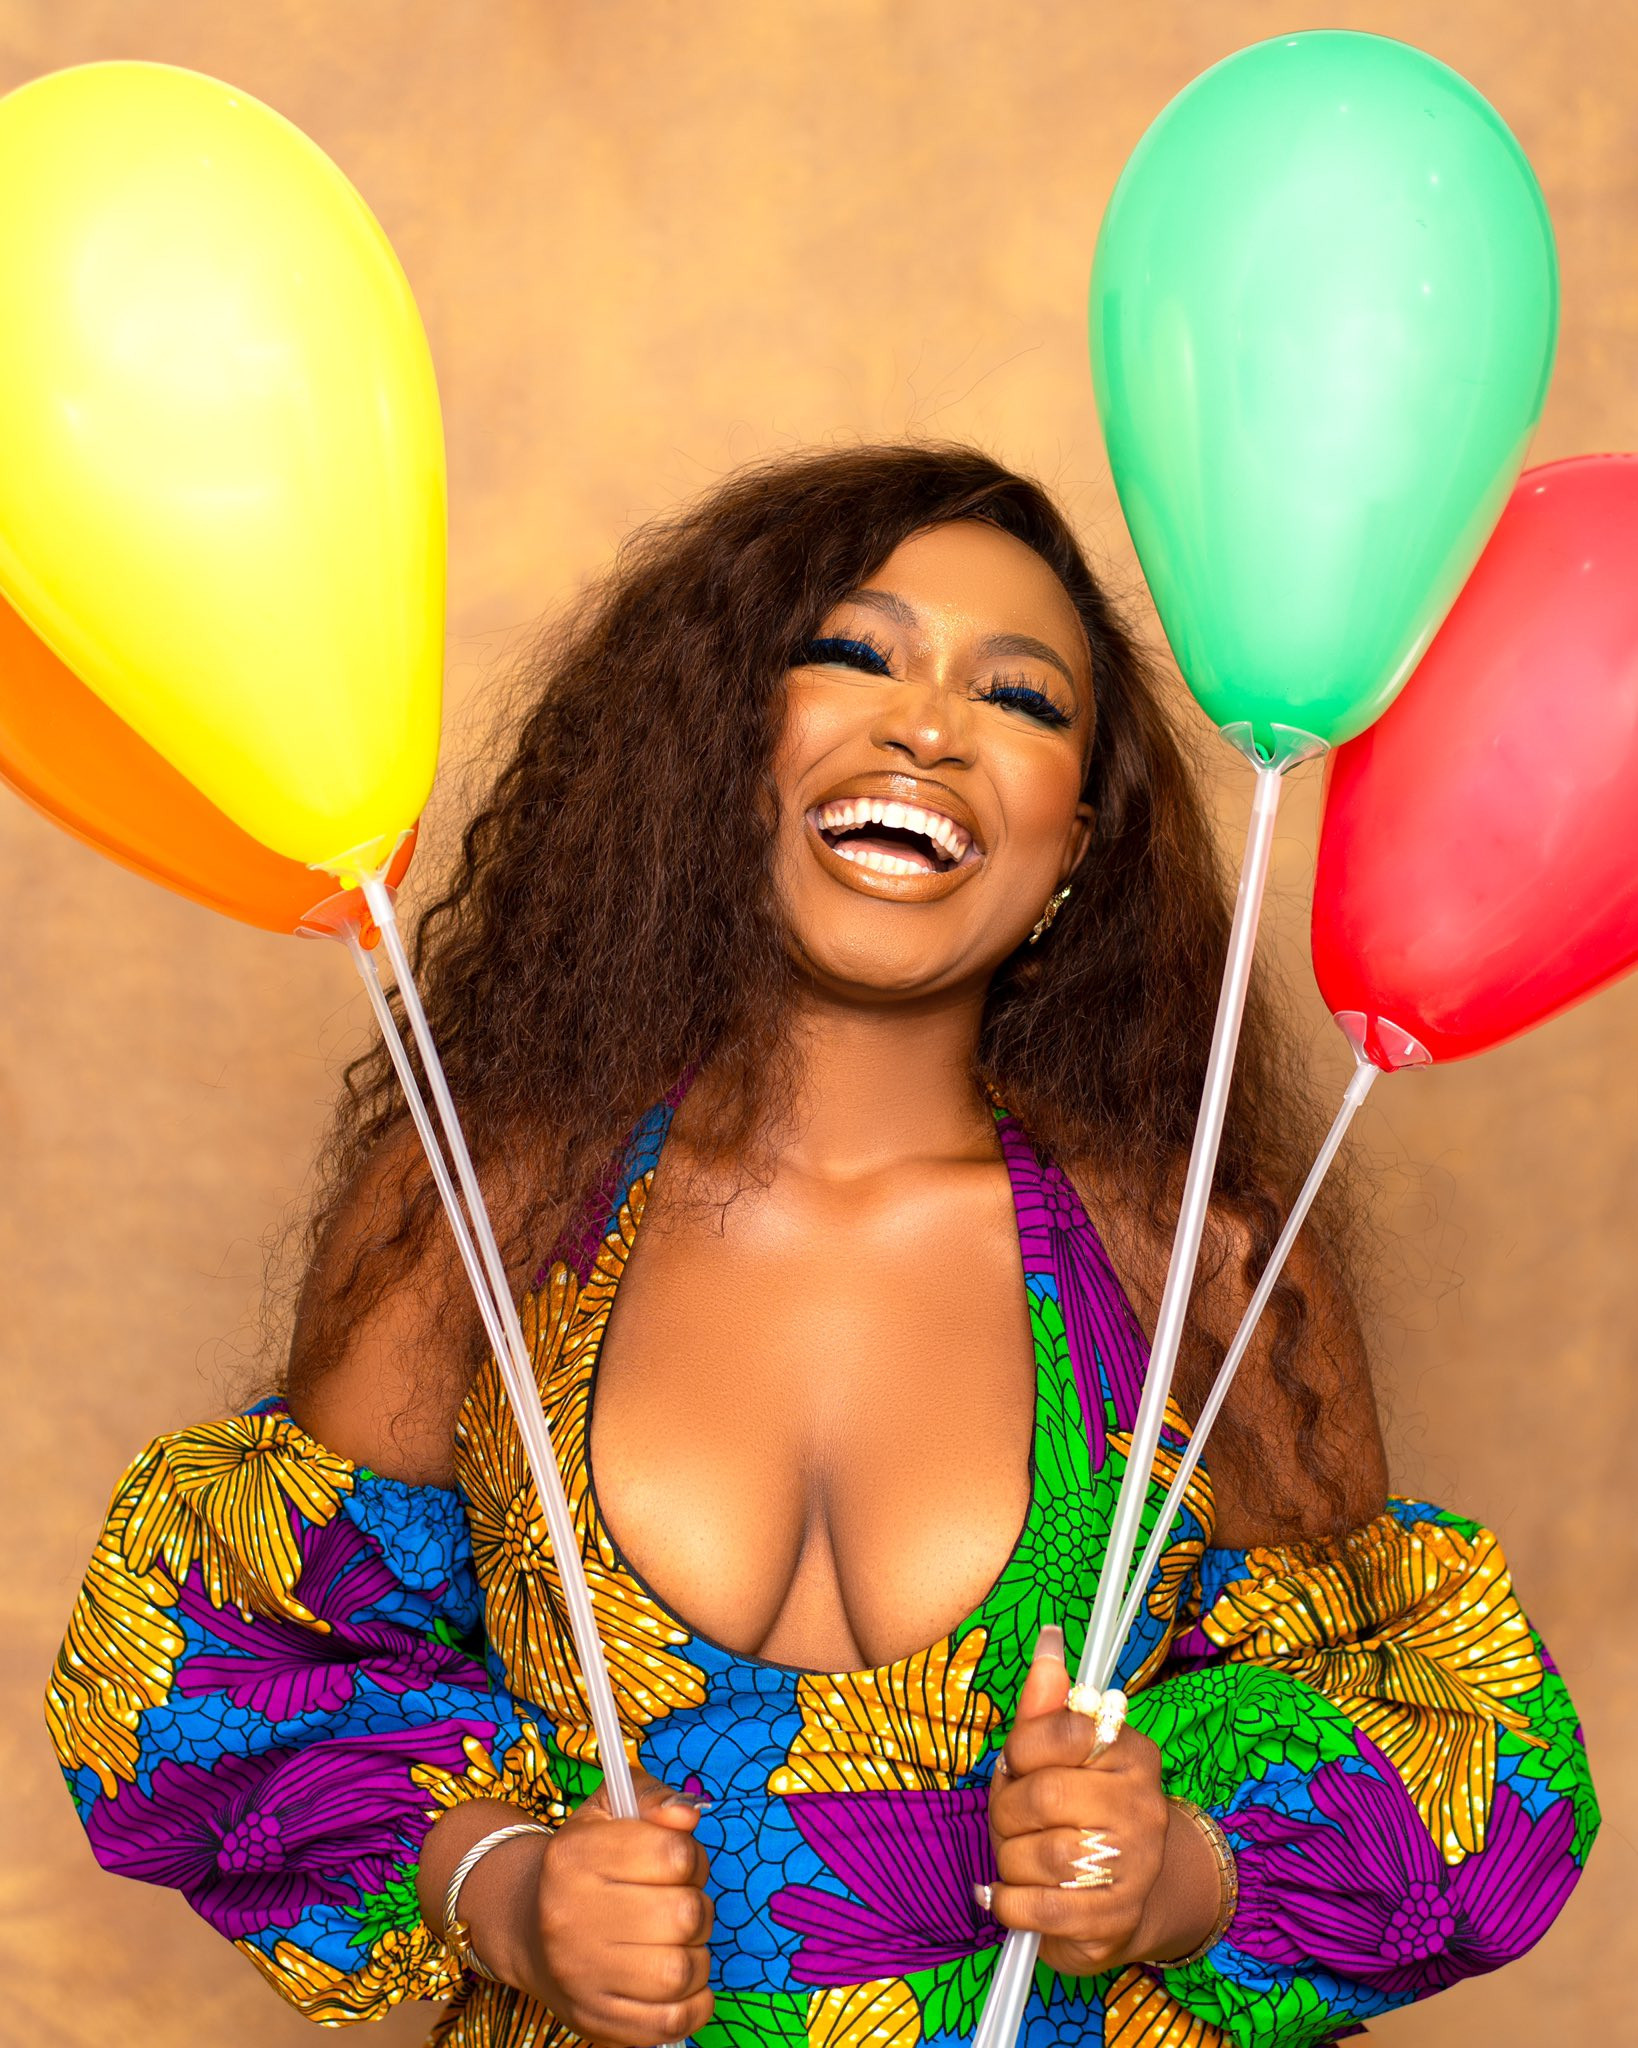 BBNaija star, Esther Agunbiade shares sexy new photos as she turns 24